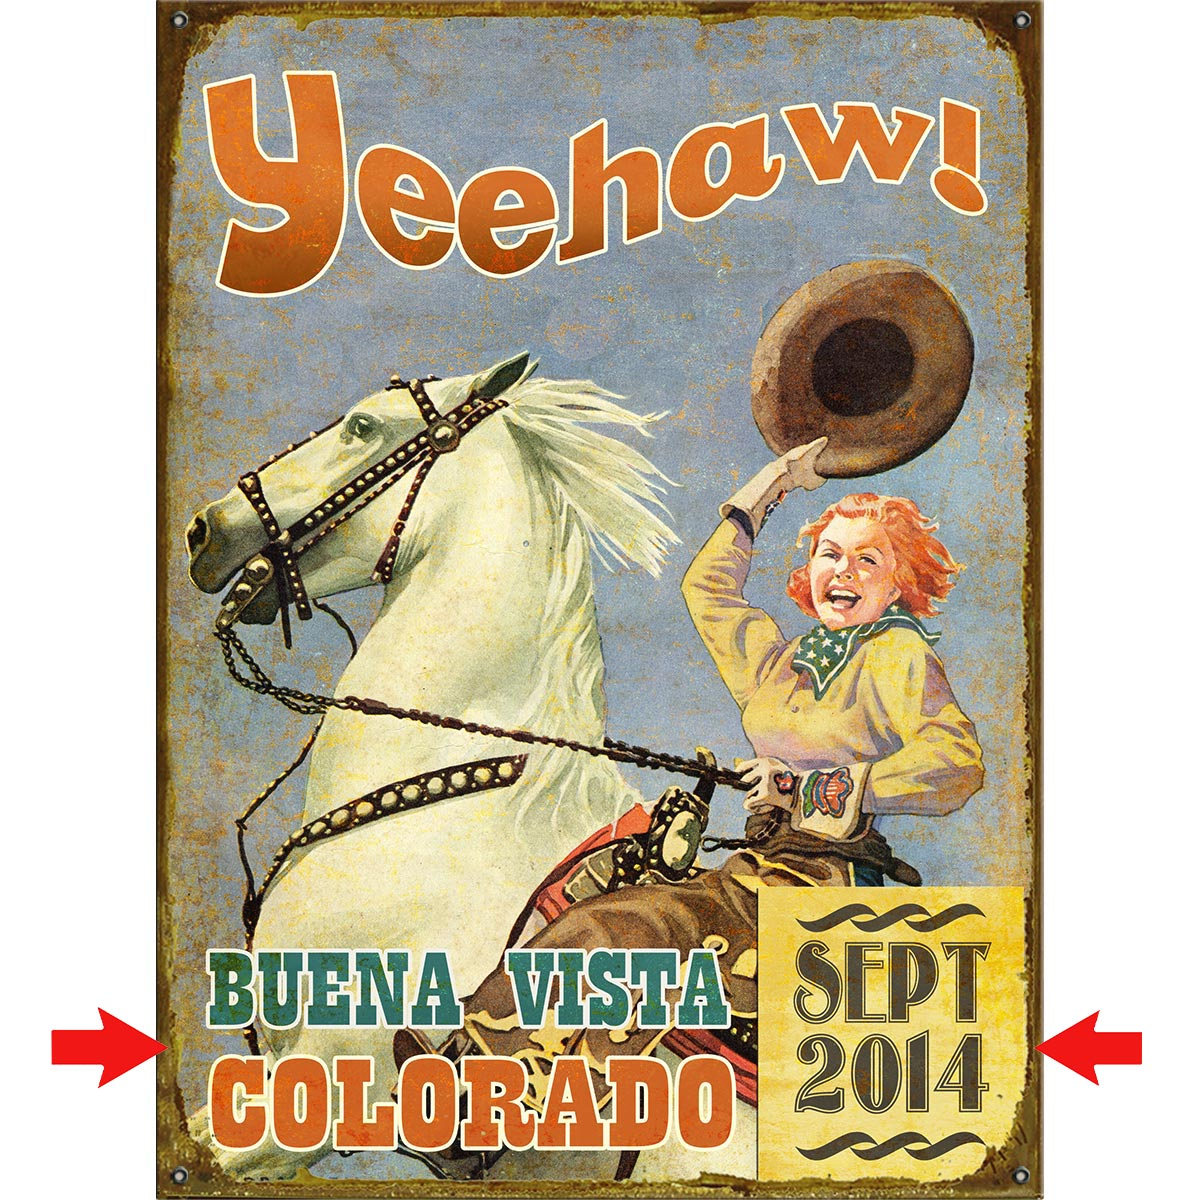 Yeehaw Cowgirl Personalized Sign - 17 x 23